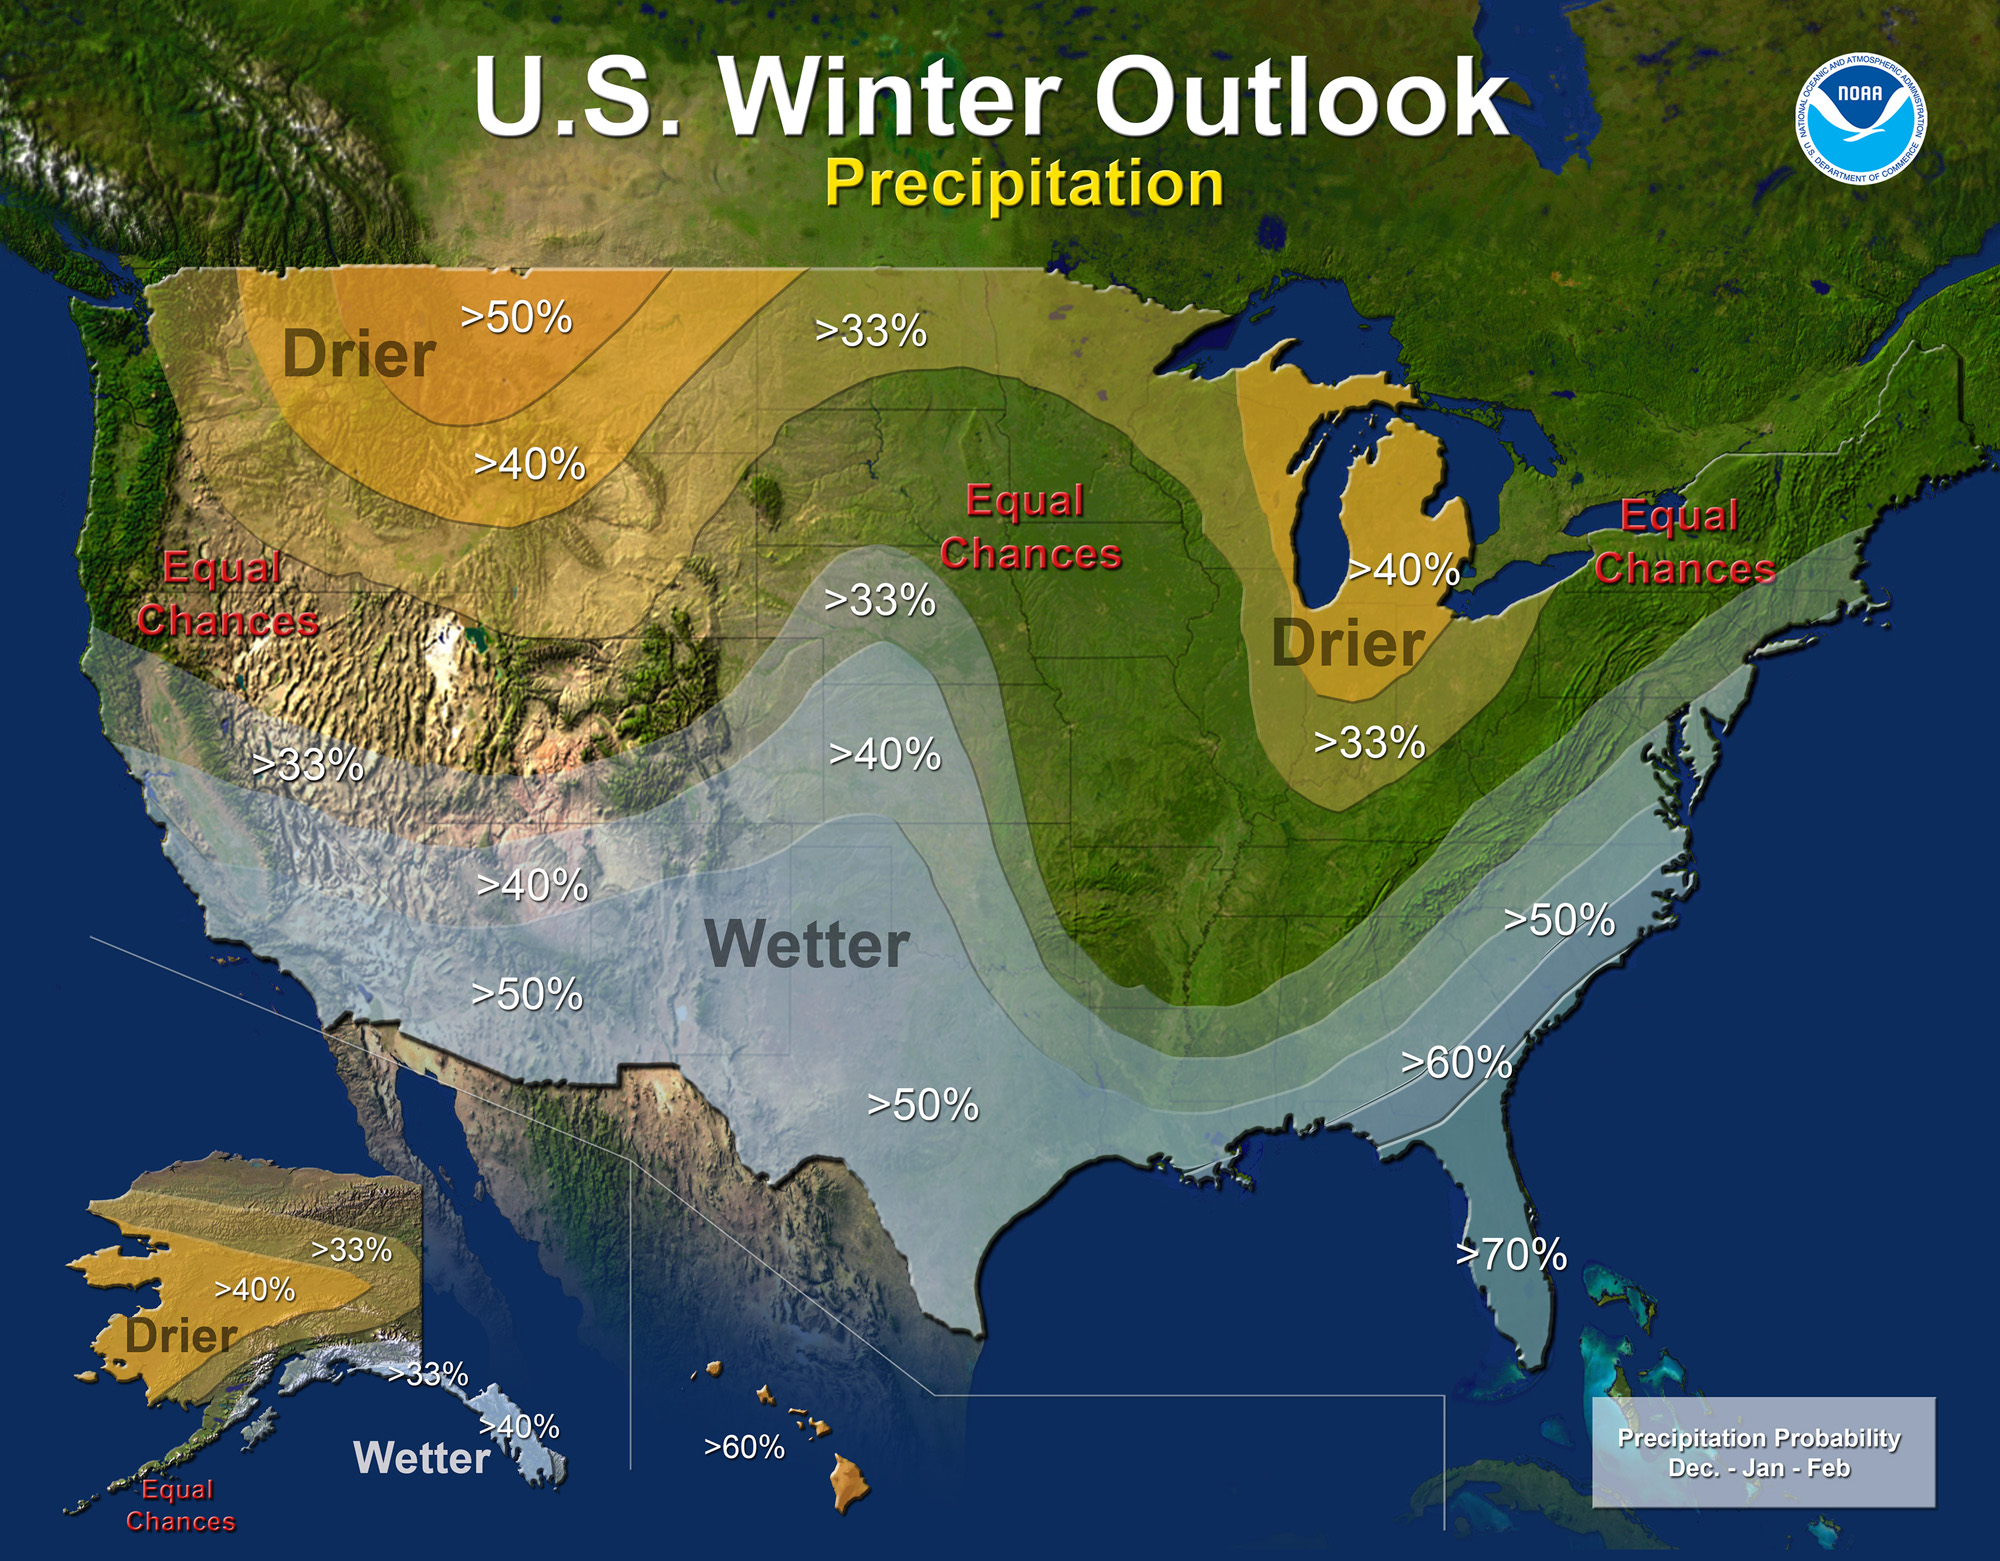 Outlook_map_Precip_2015_2F_2000